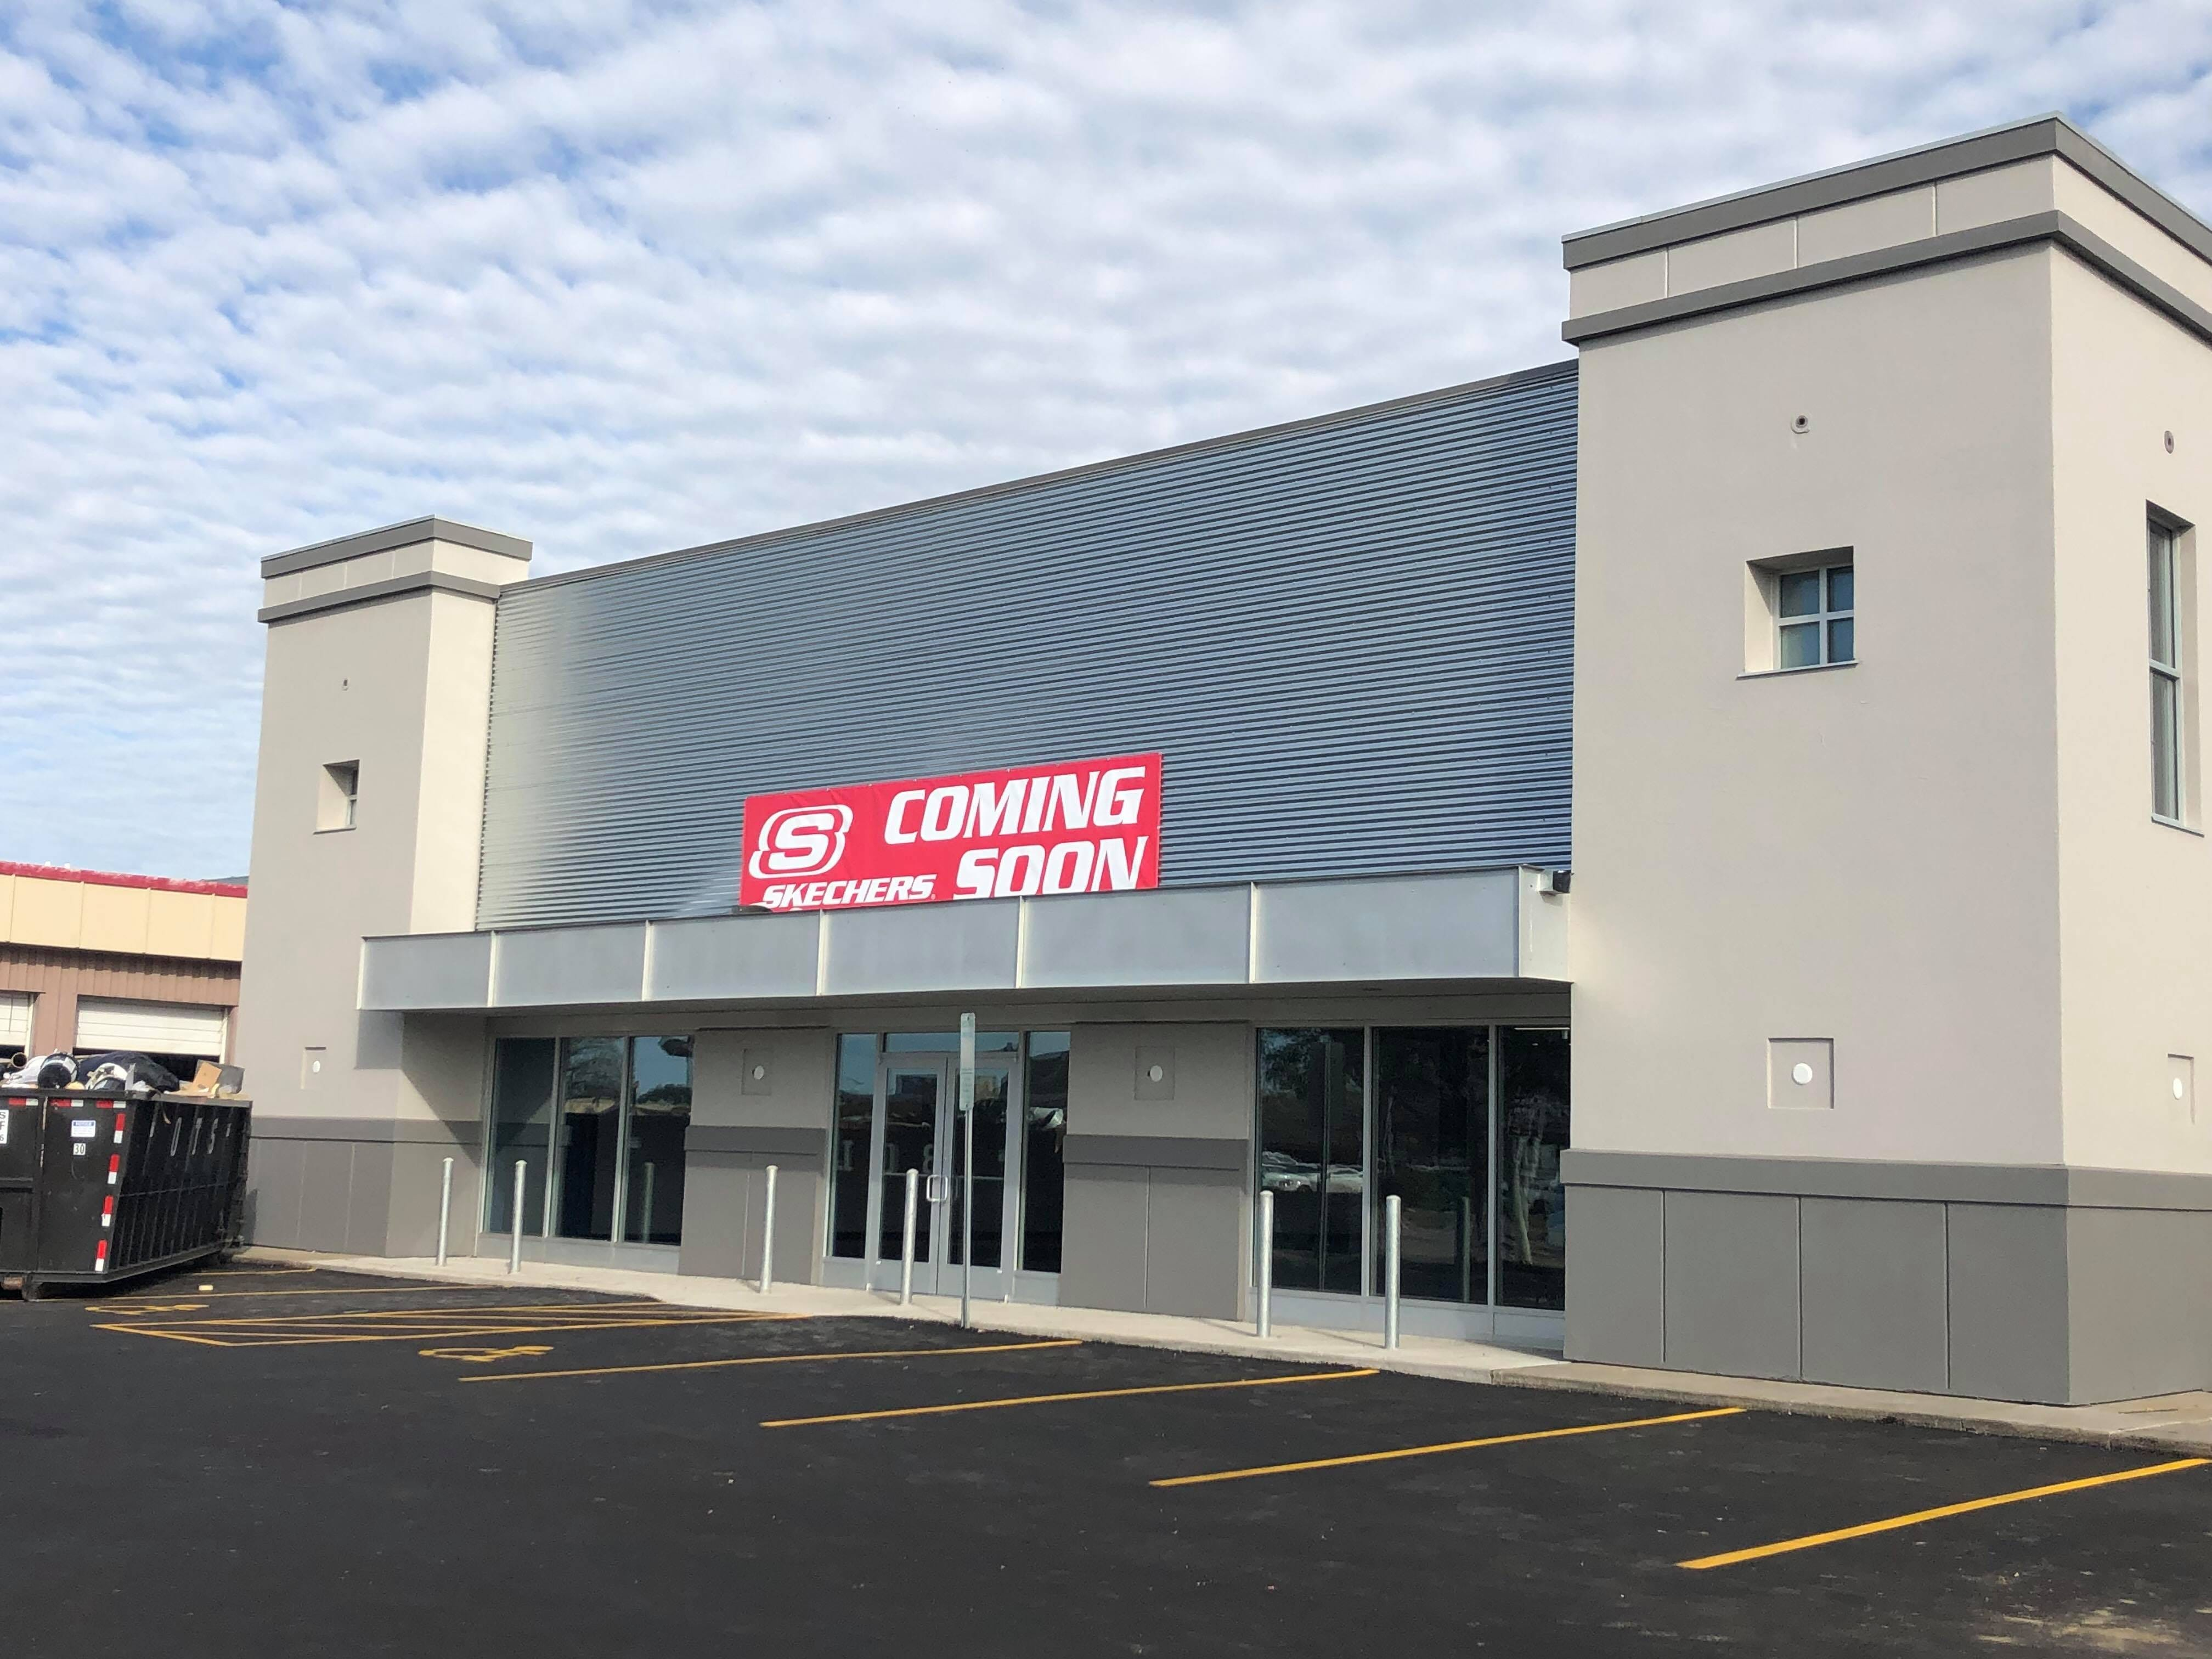 Skechers opening standalone Sioux Falls